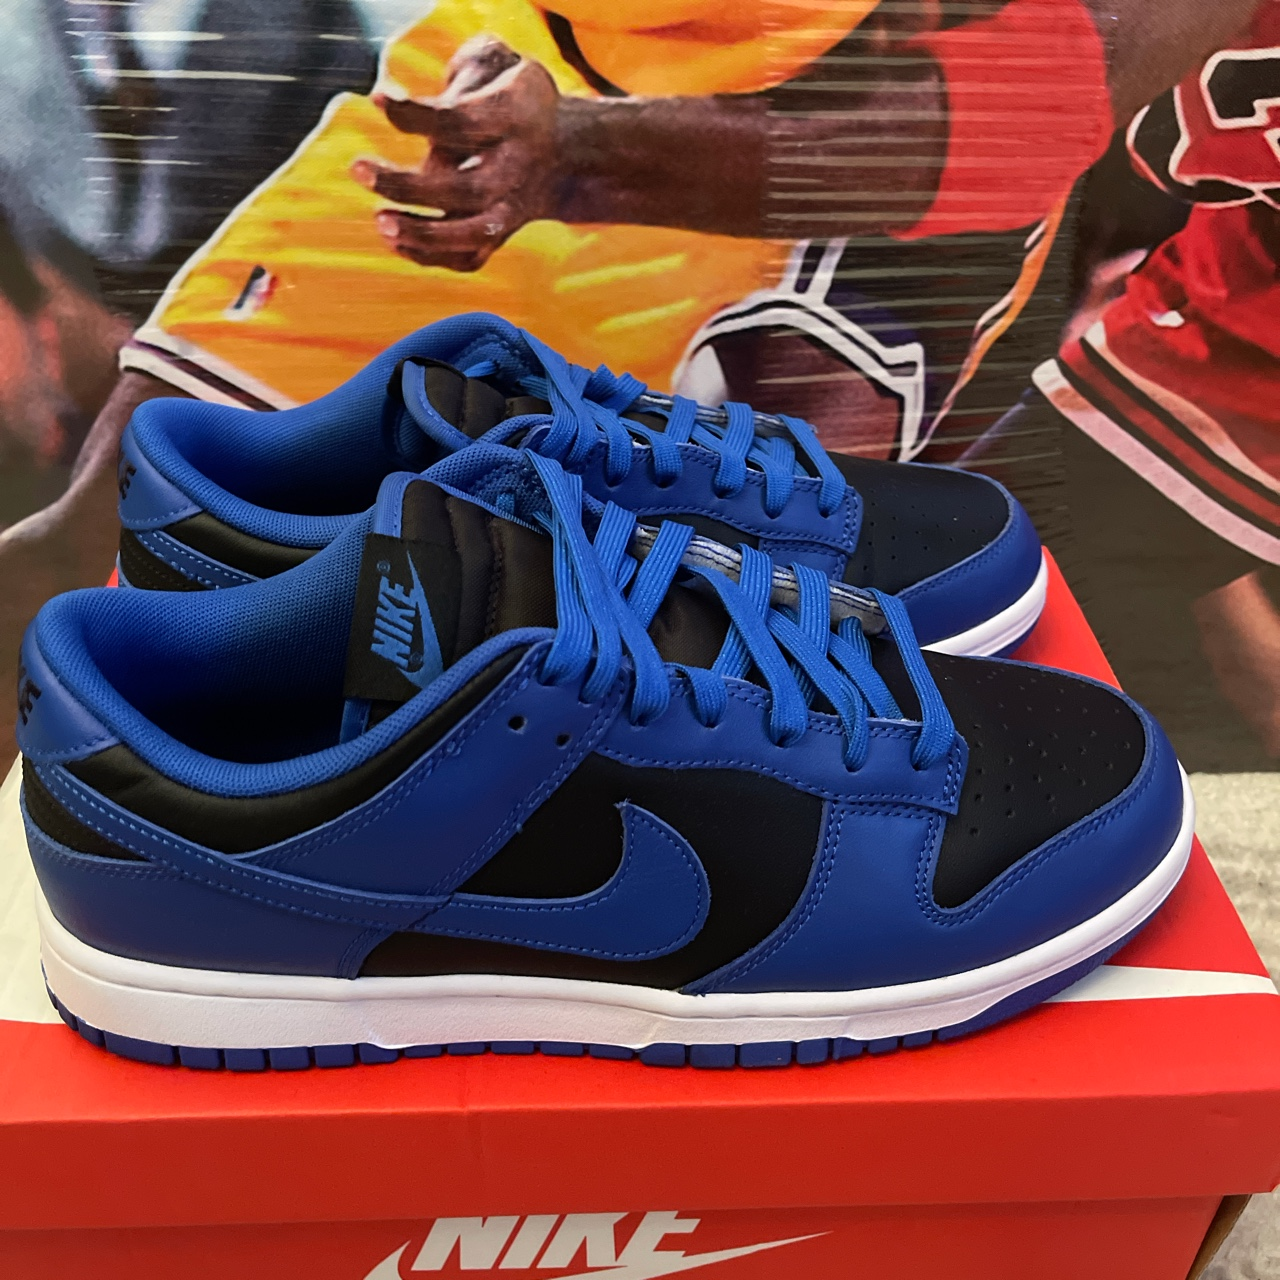 Product Image 1 - Nike Dunk Low Black Hyper